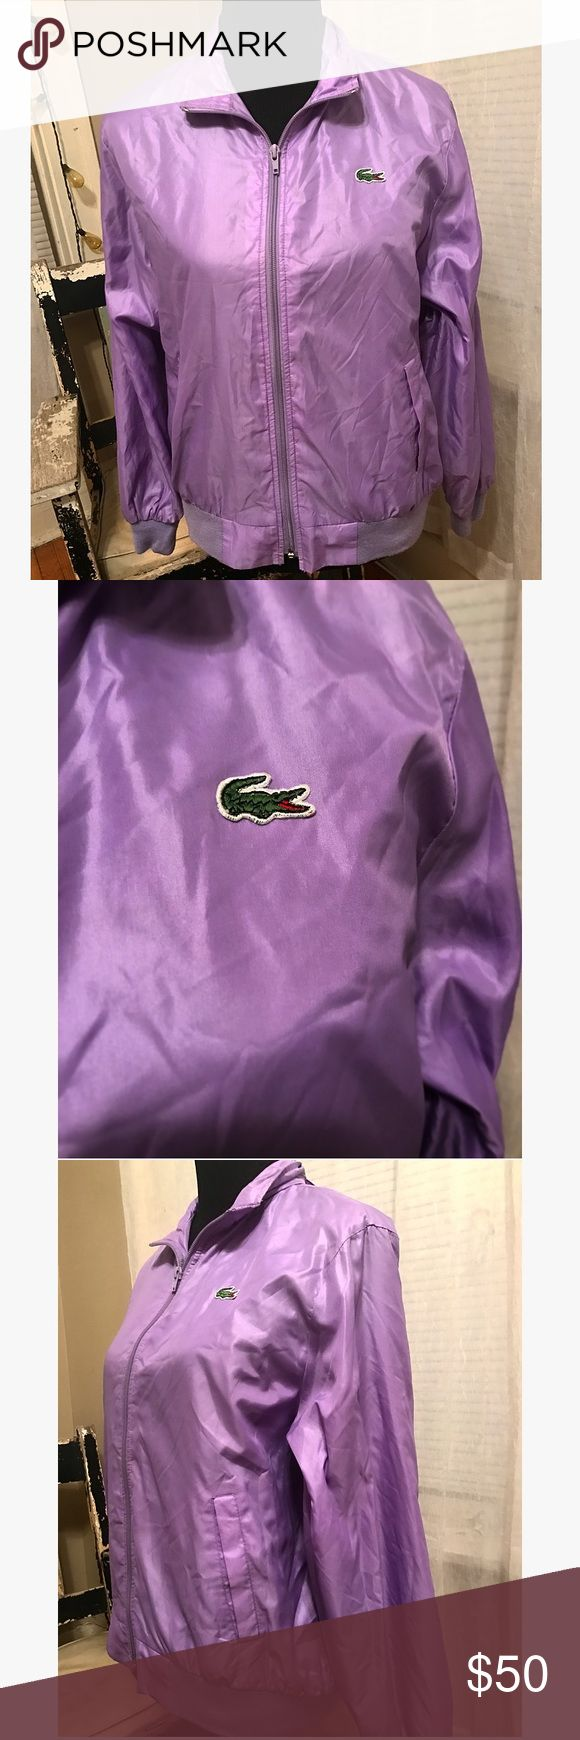 80s Izod Lacoste Nylon Windbreaker How awesome is this?! Gorgeous purple lavender color,women's medium, full zip, stow away hood in collar (can stuff hood in & zip up- see 4th& 5th pictures), 2 side slit pockets, 100% nylon. Hand wash luke warm/ drip dry. Literally in perfect condition/ looks as if it's never been worn Lacoste Jackets & Coats